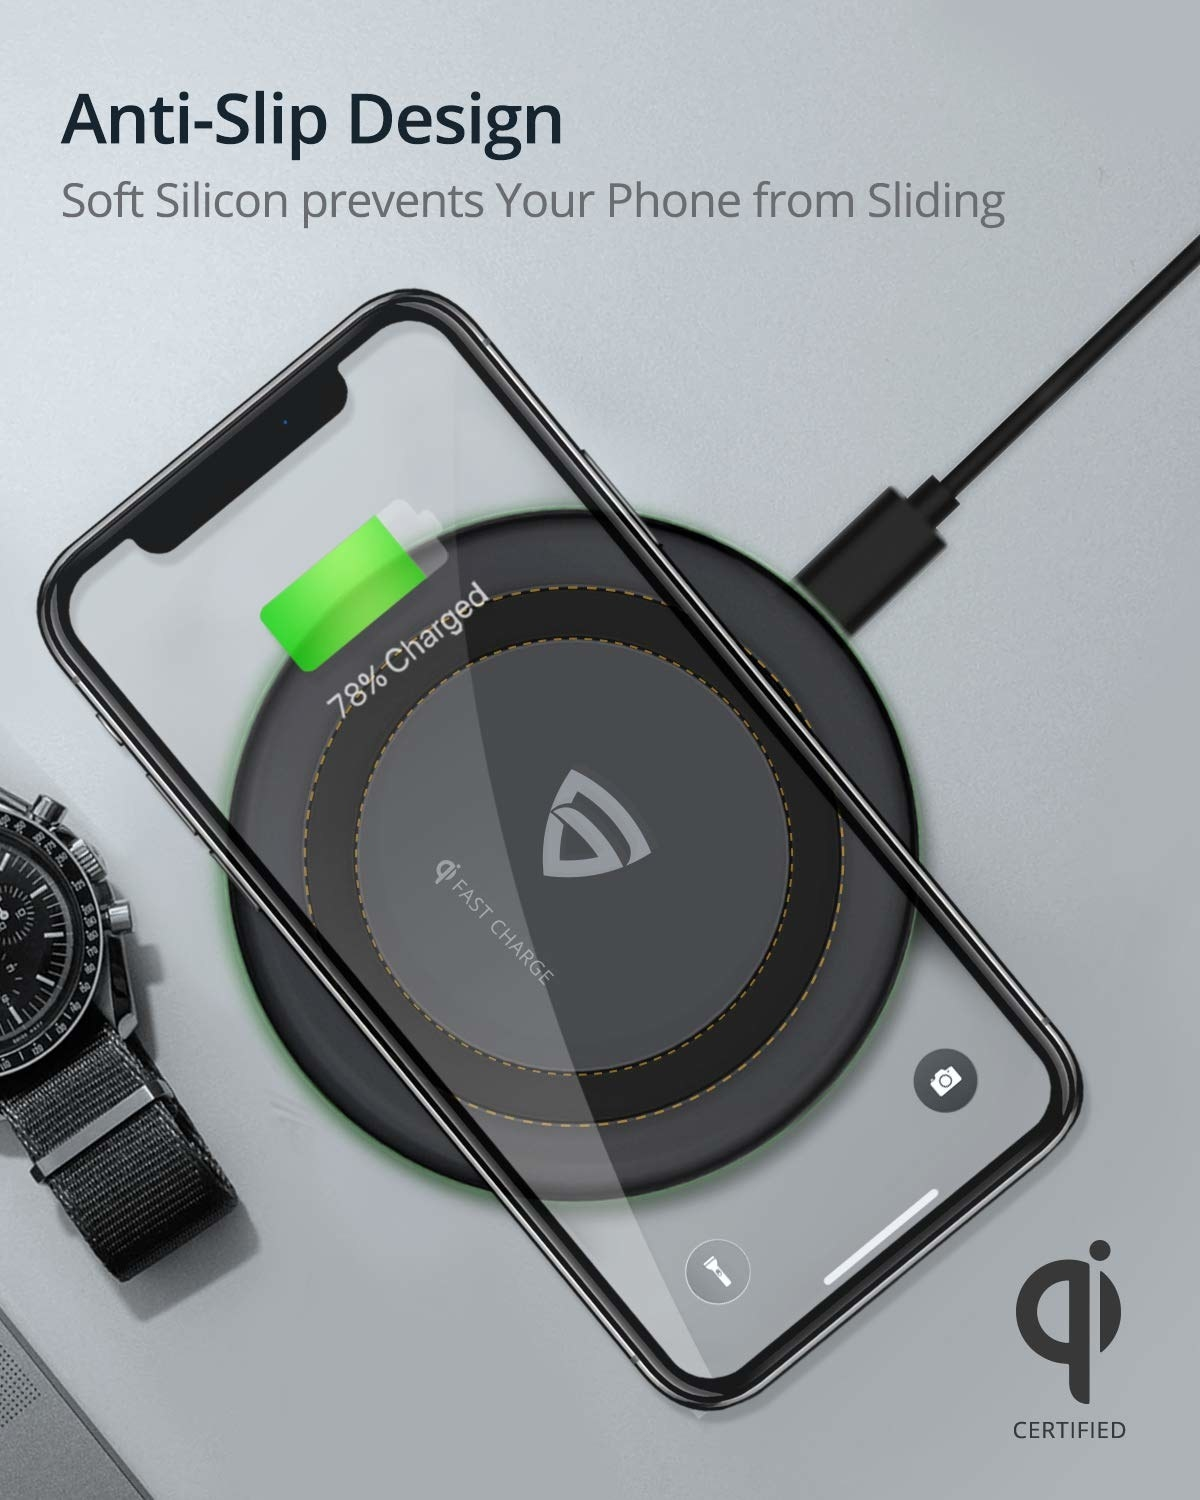 A wireless charger with a phone on it